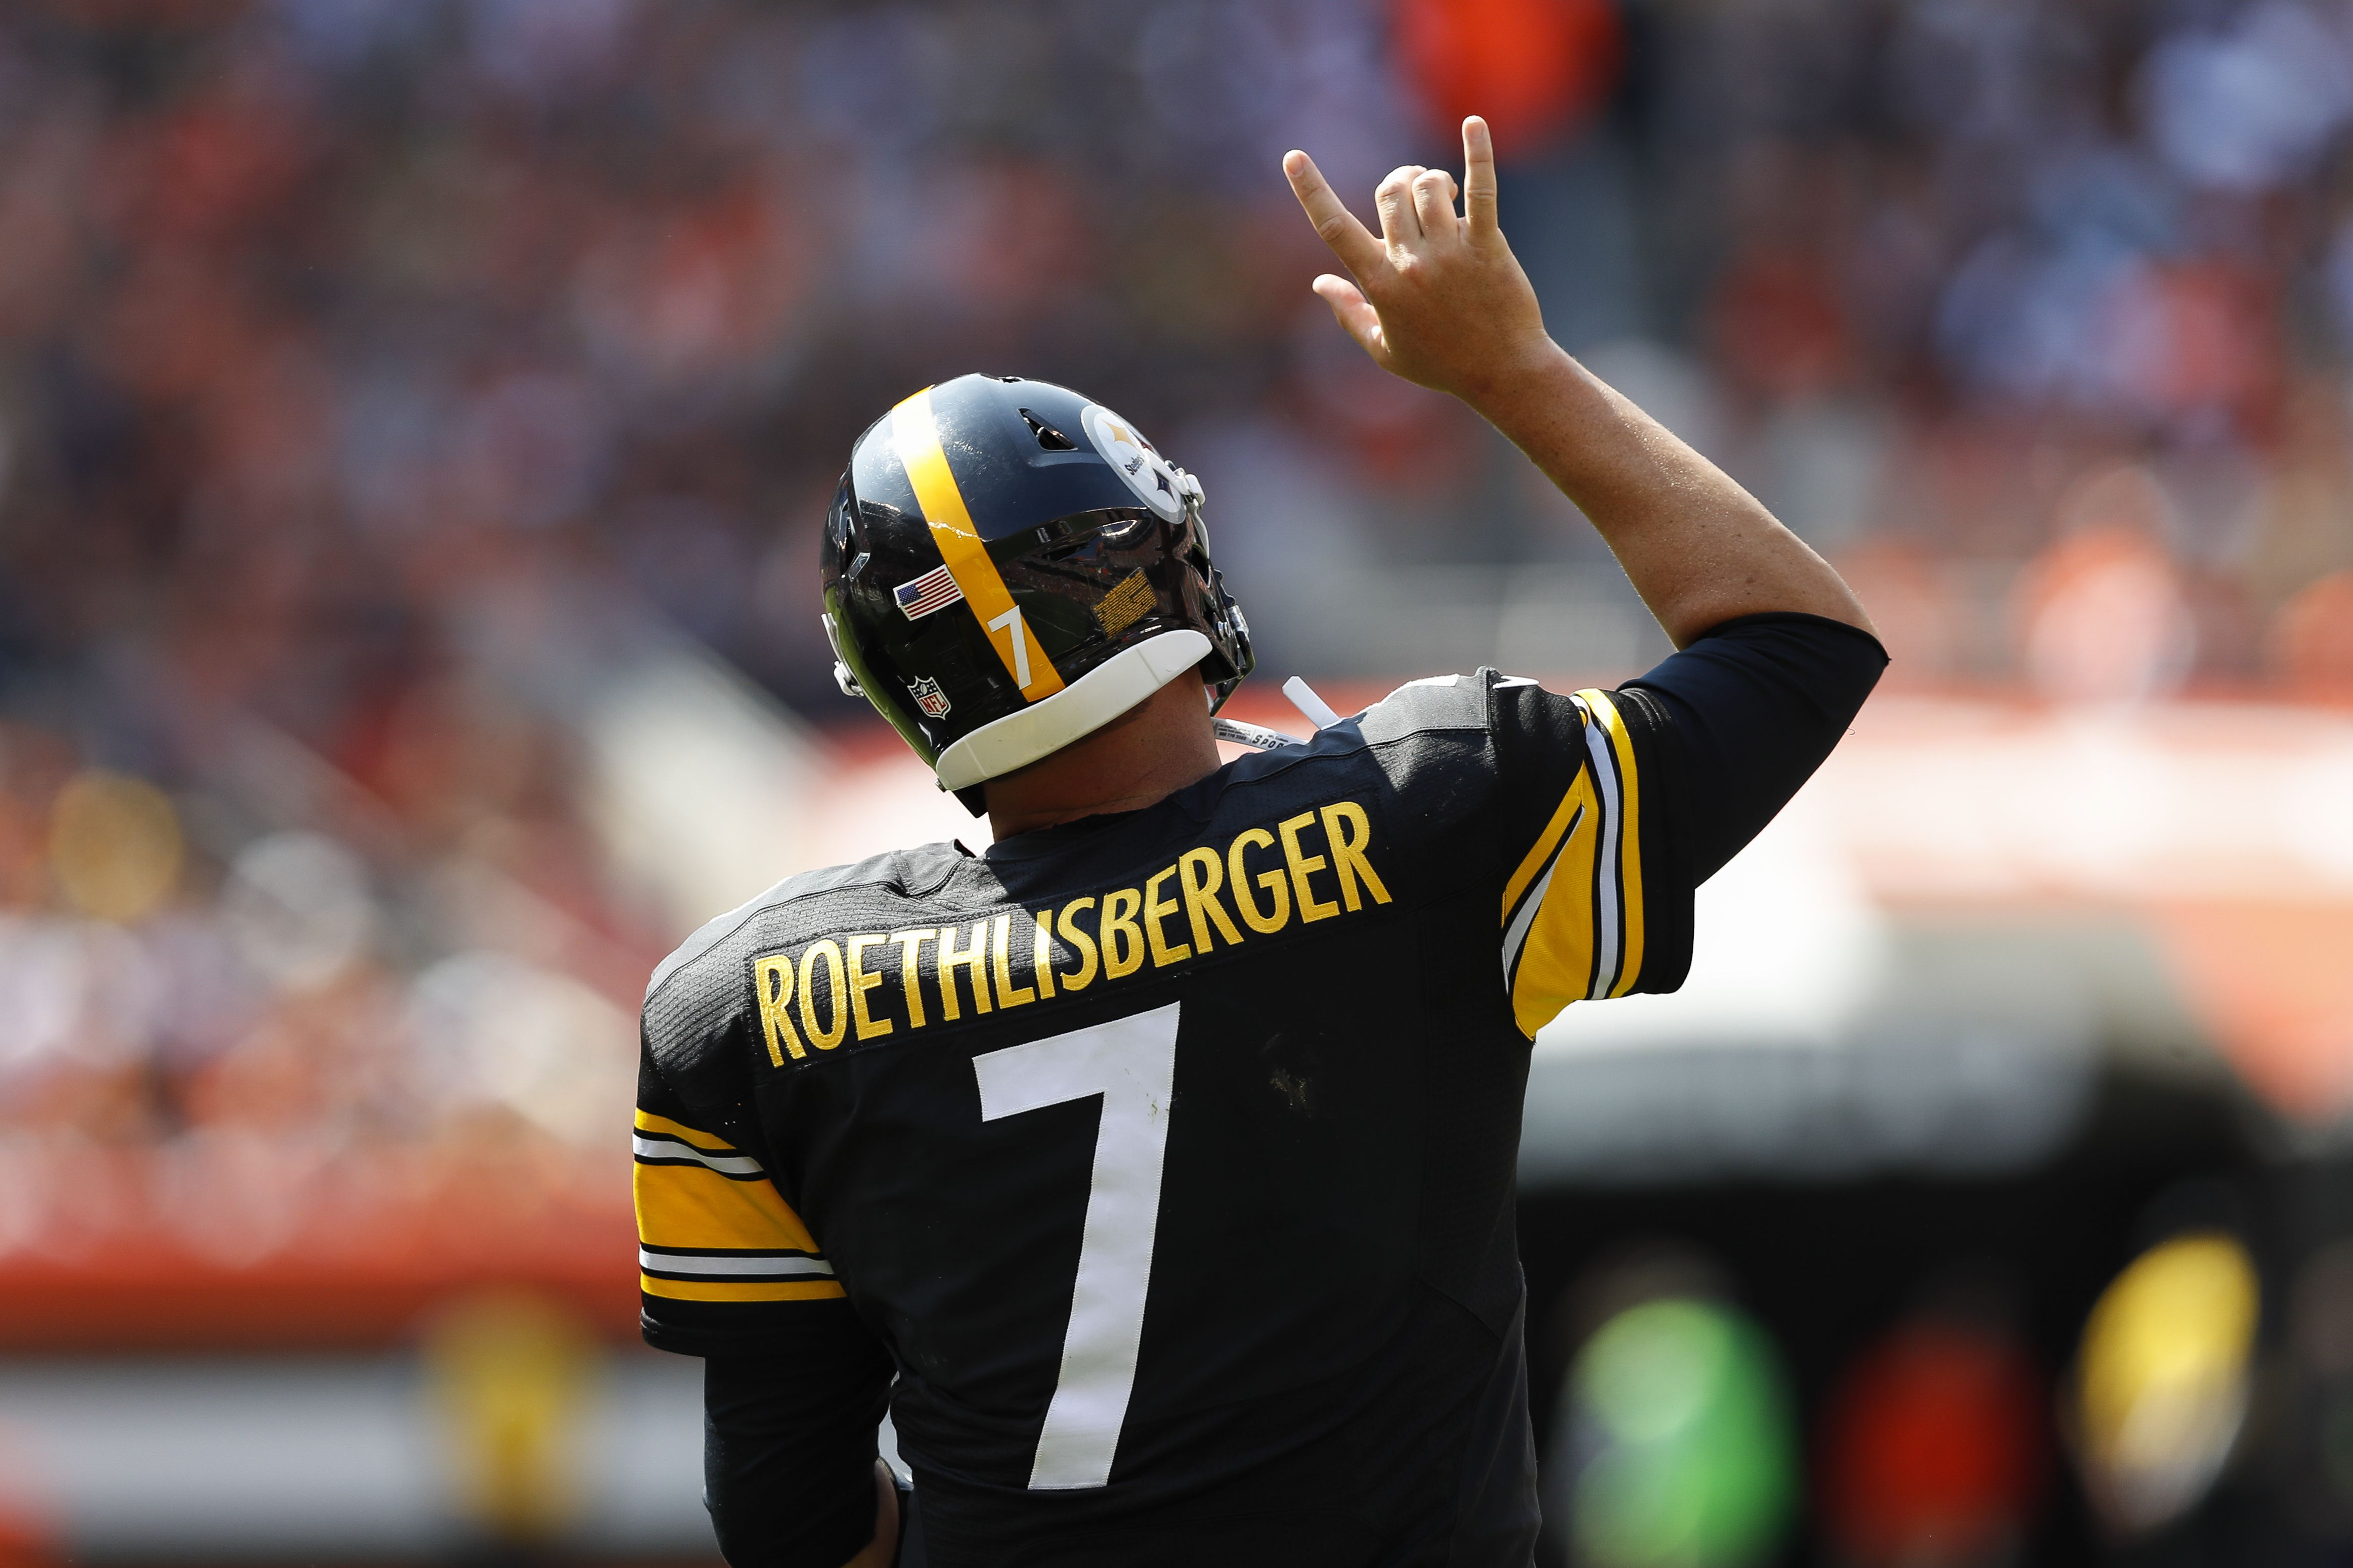 Big Ben throwing it up to celebrate Pittsburgh Steelers